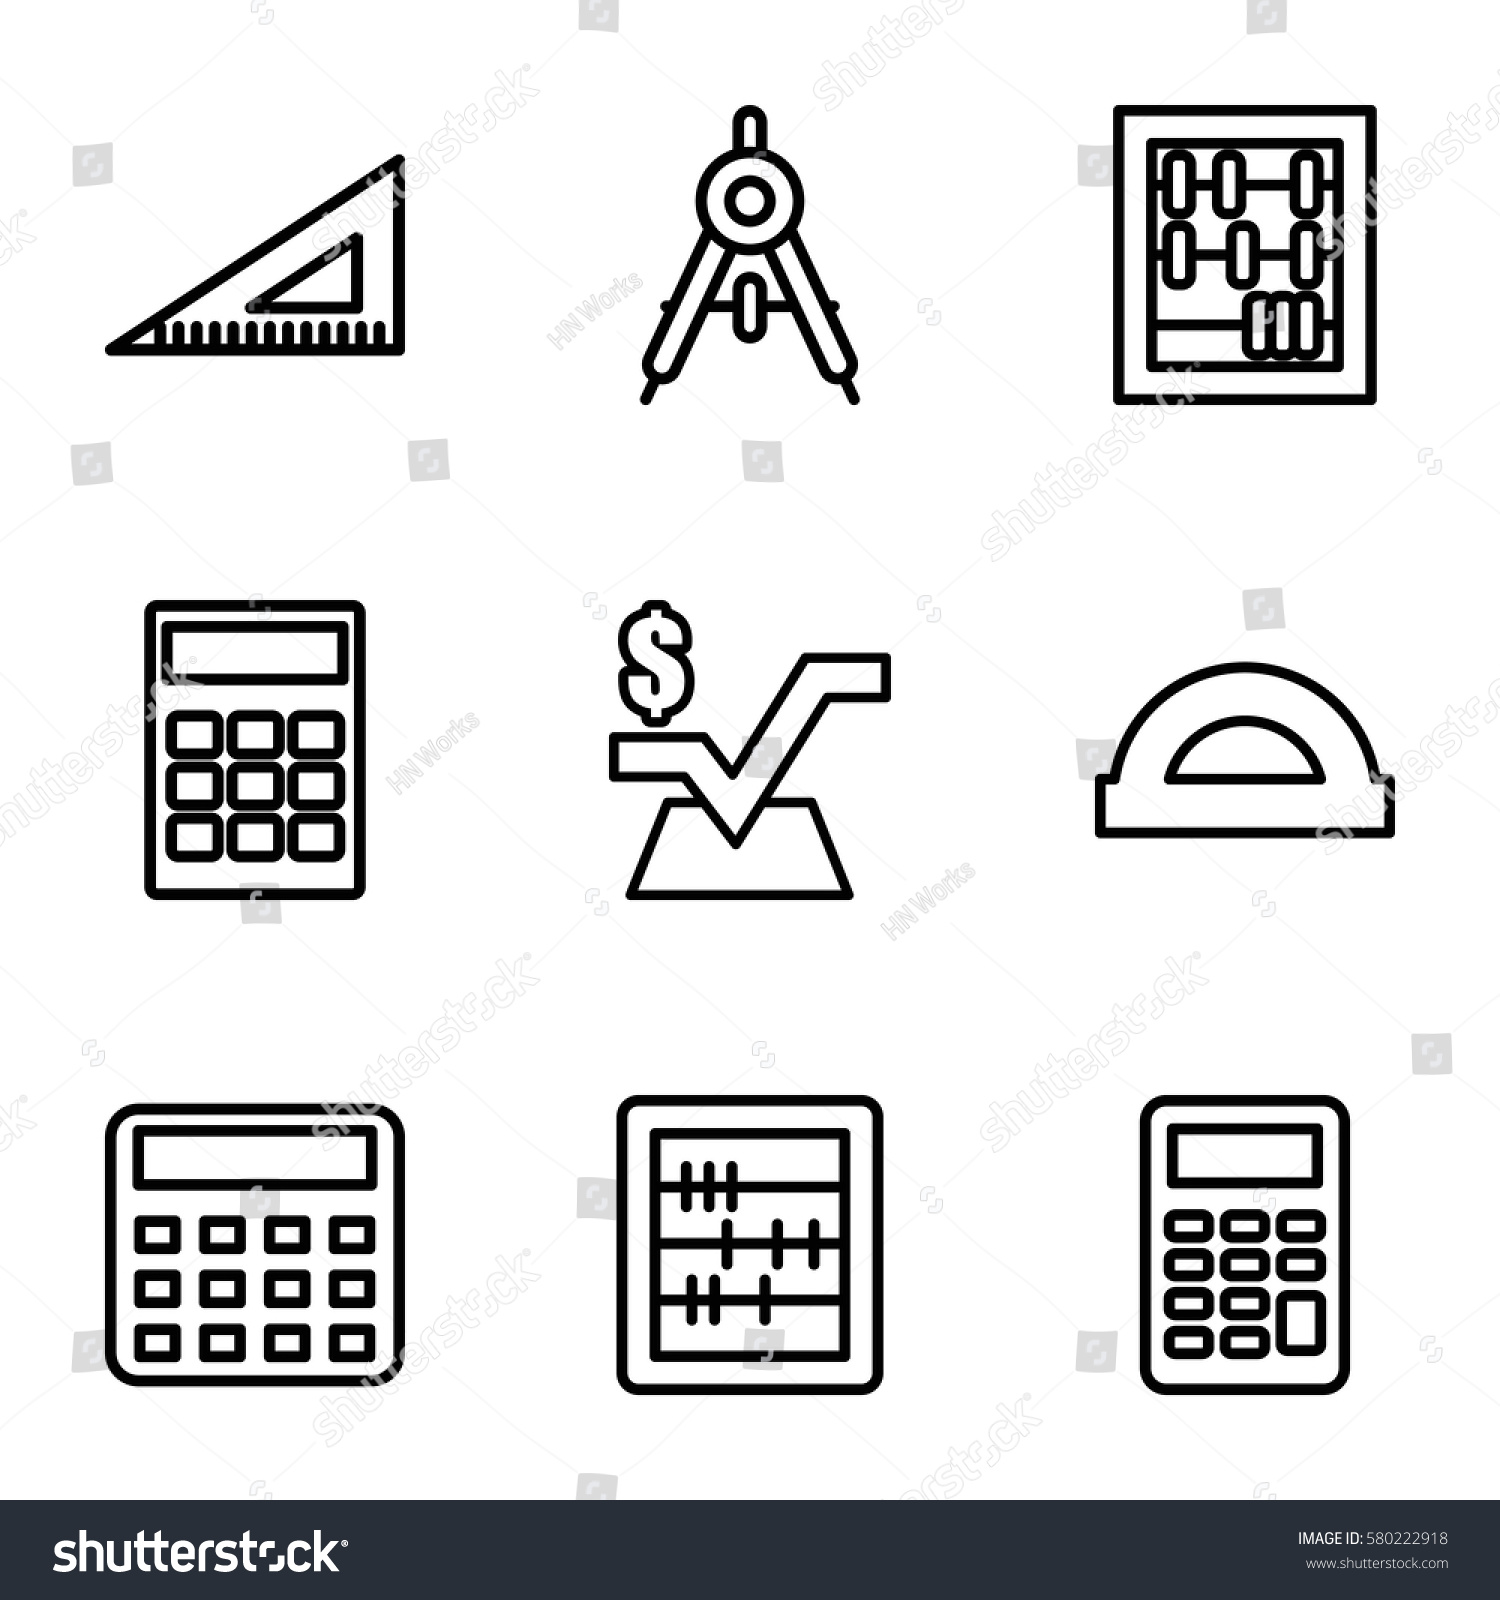 Mathematics vector icons set 9 mathematics stock vector 580222918 mathematics vector icons set of 9 mathematics outline icons such as compass calculator buycottarizona Image collections